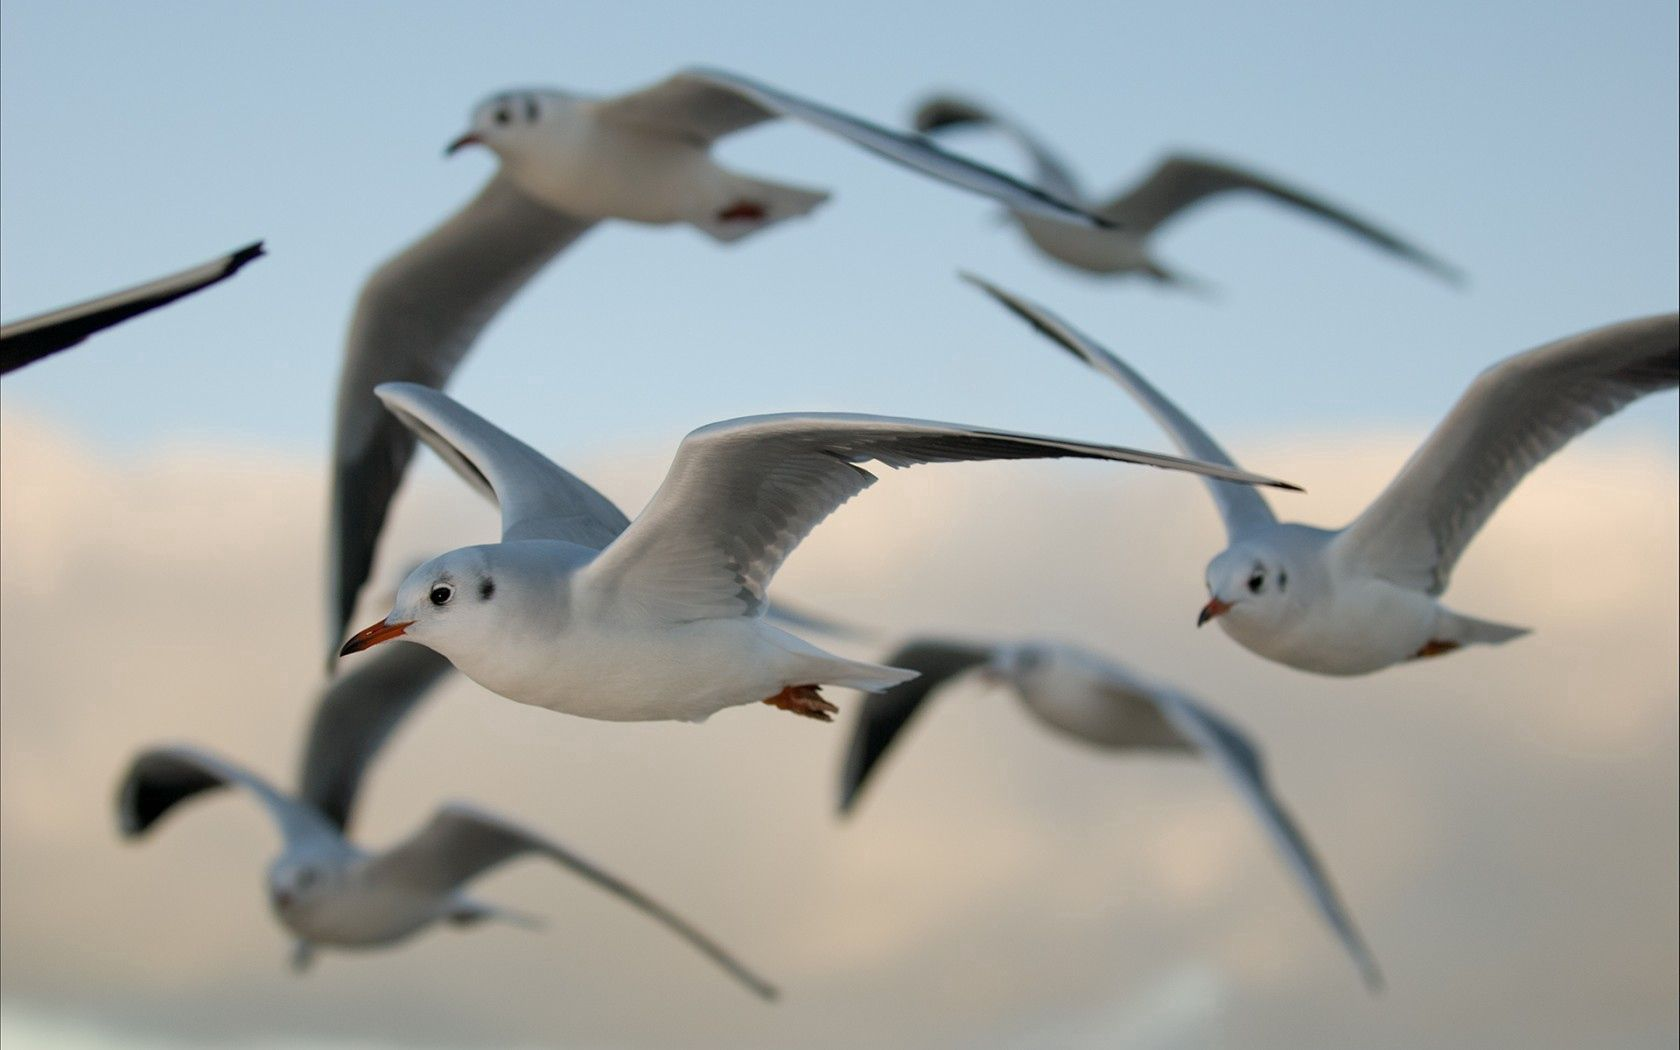 99426 download wallpaper Animals, Flight, Birds, Seagulls screensavers and pictures for free